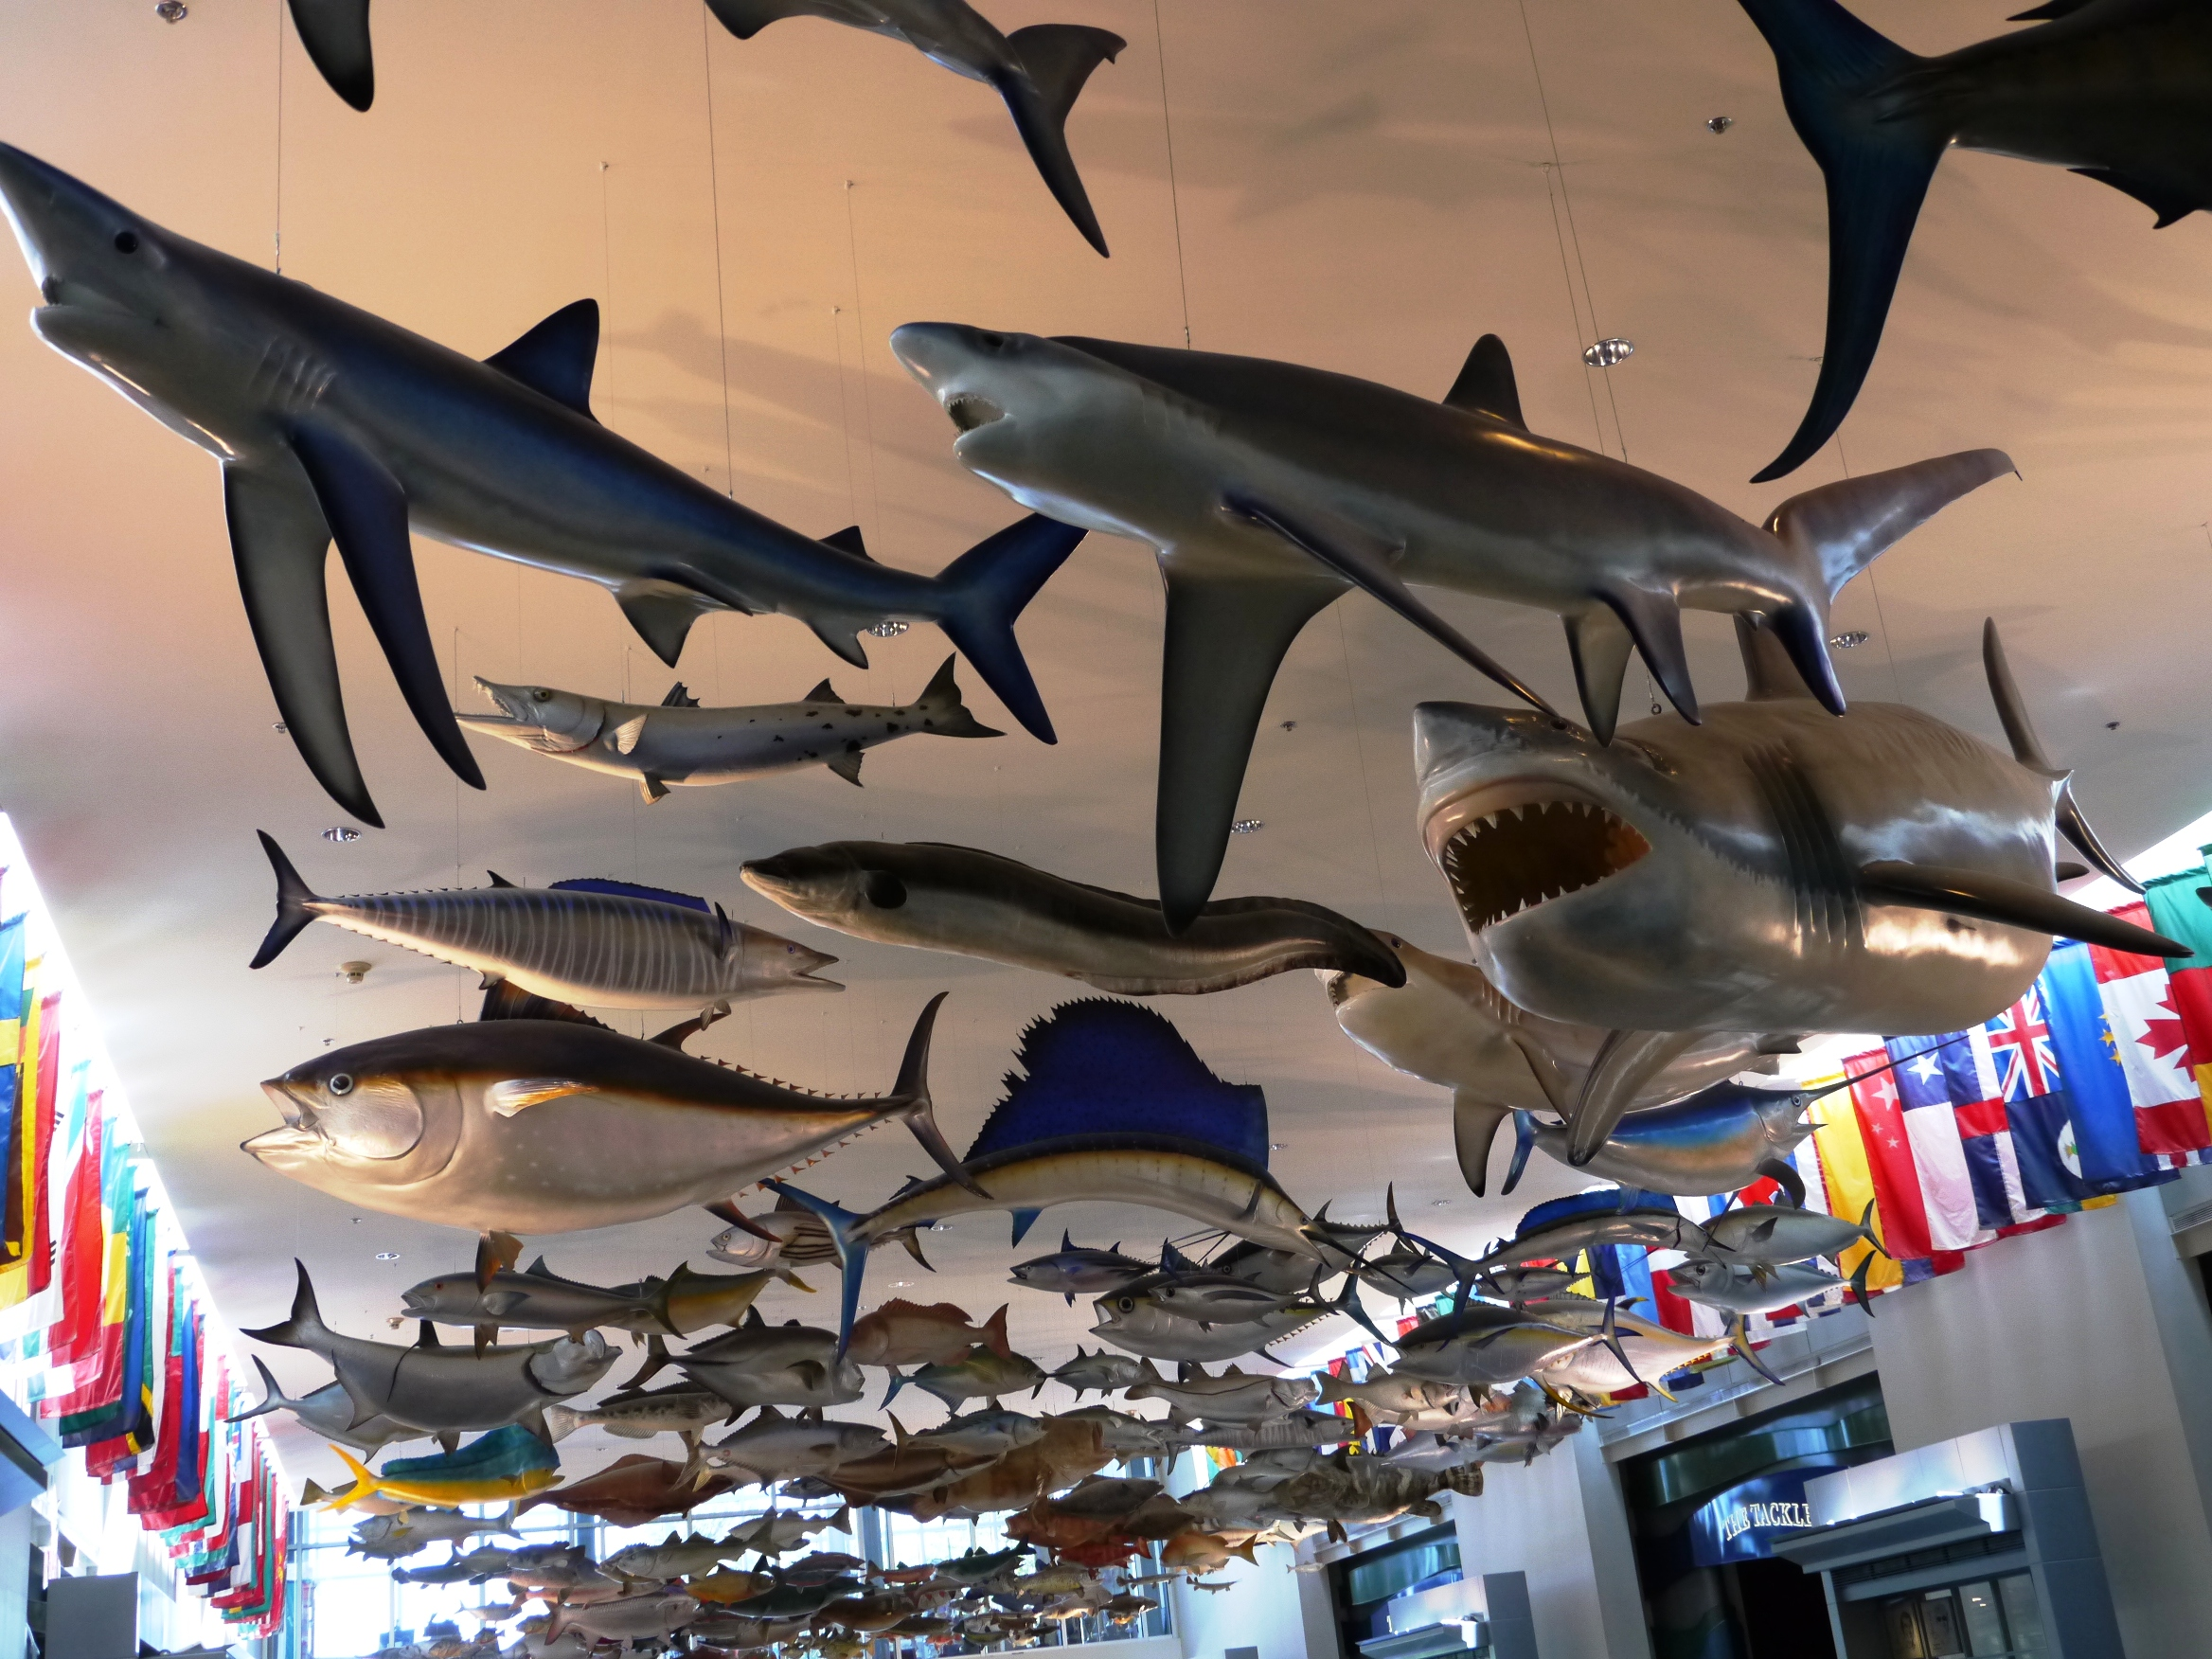 Fishing Hall of Fame Shark Trophies in Fort Lauderdale